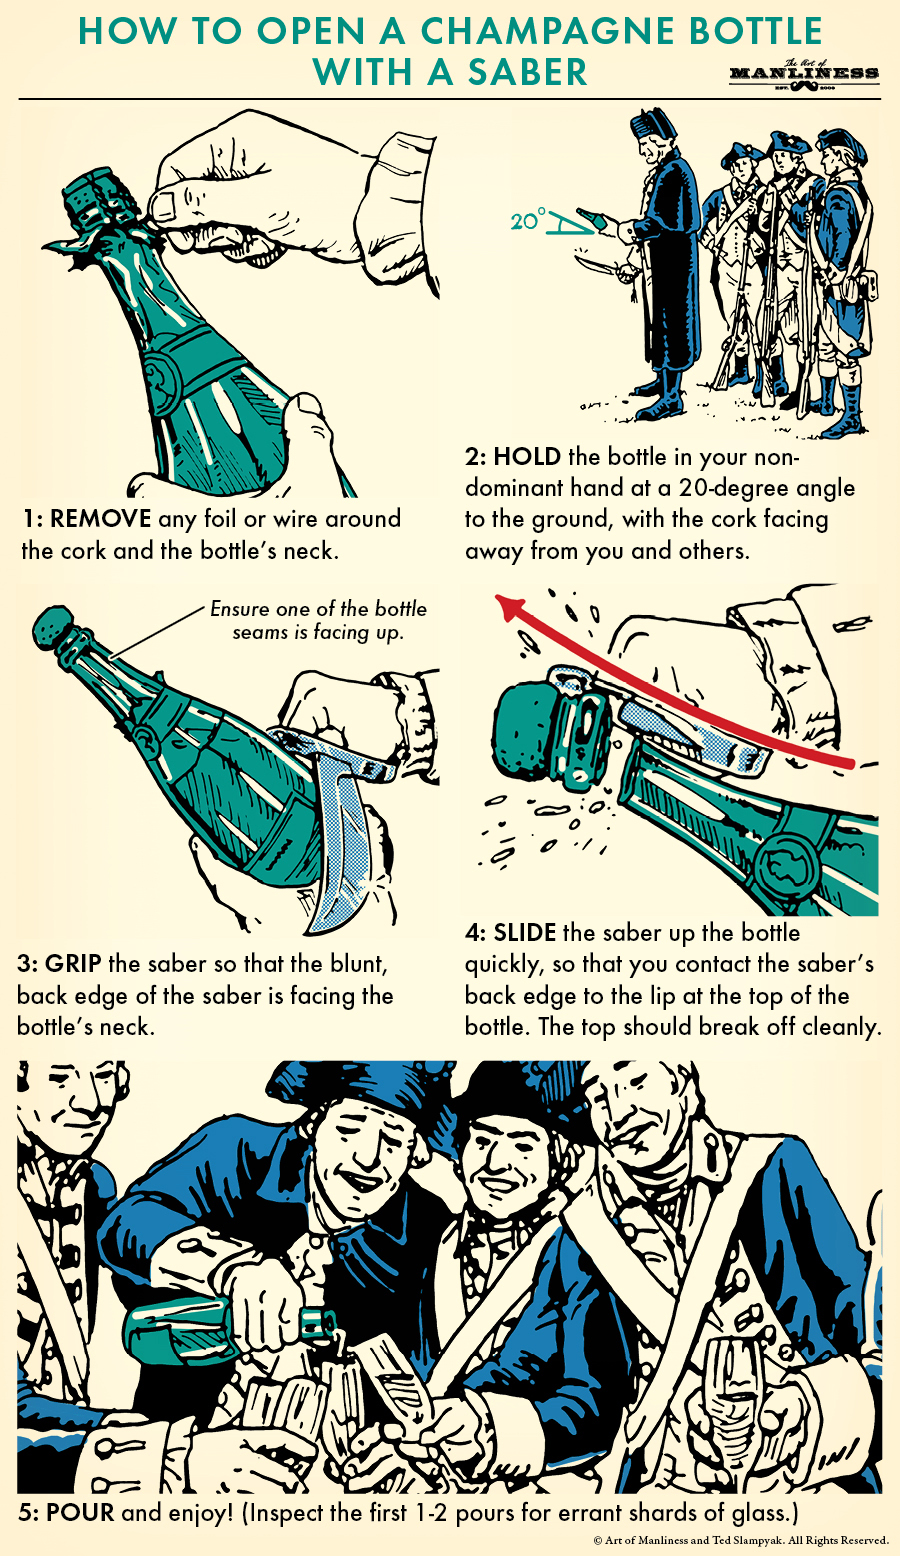 Procedure to open a champagne bottle with a saber illustration.